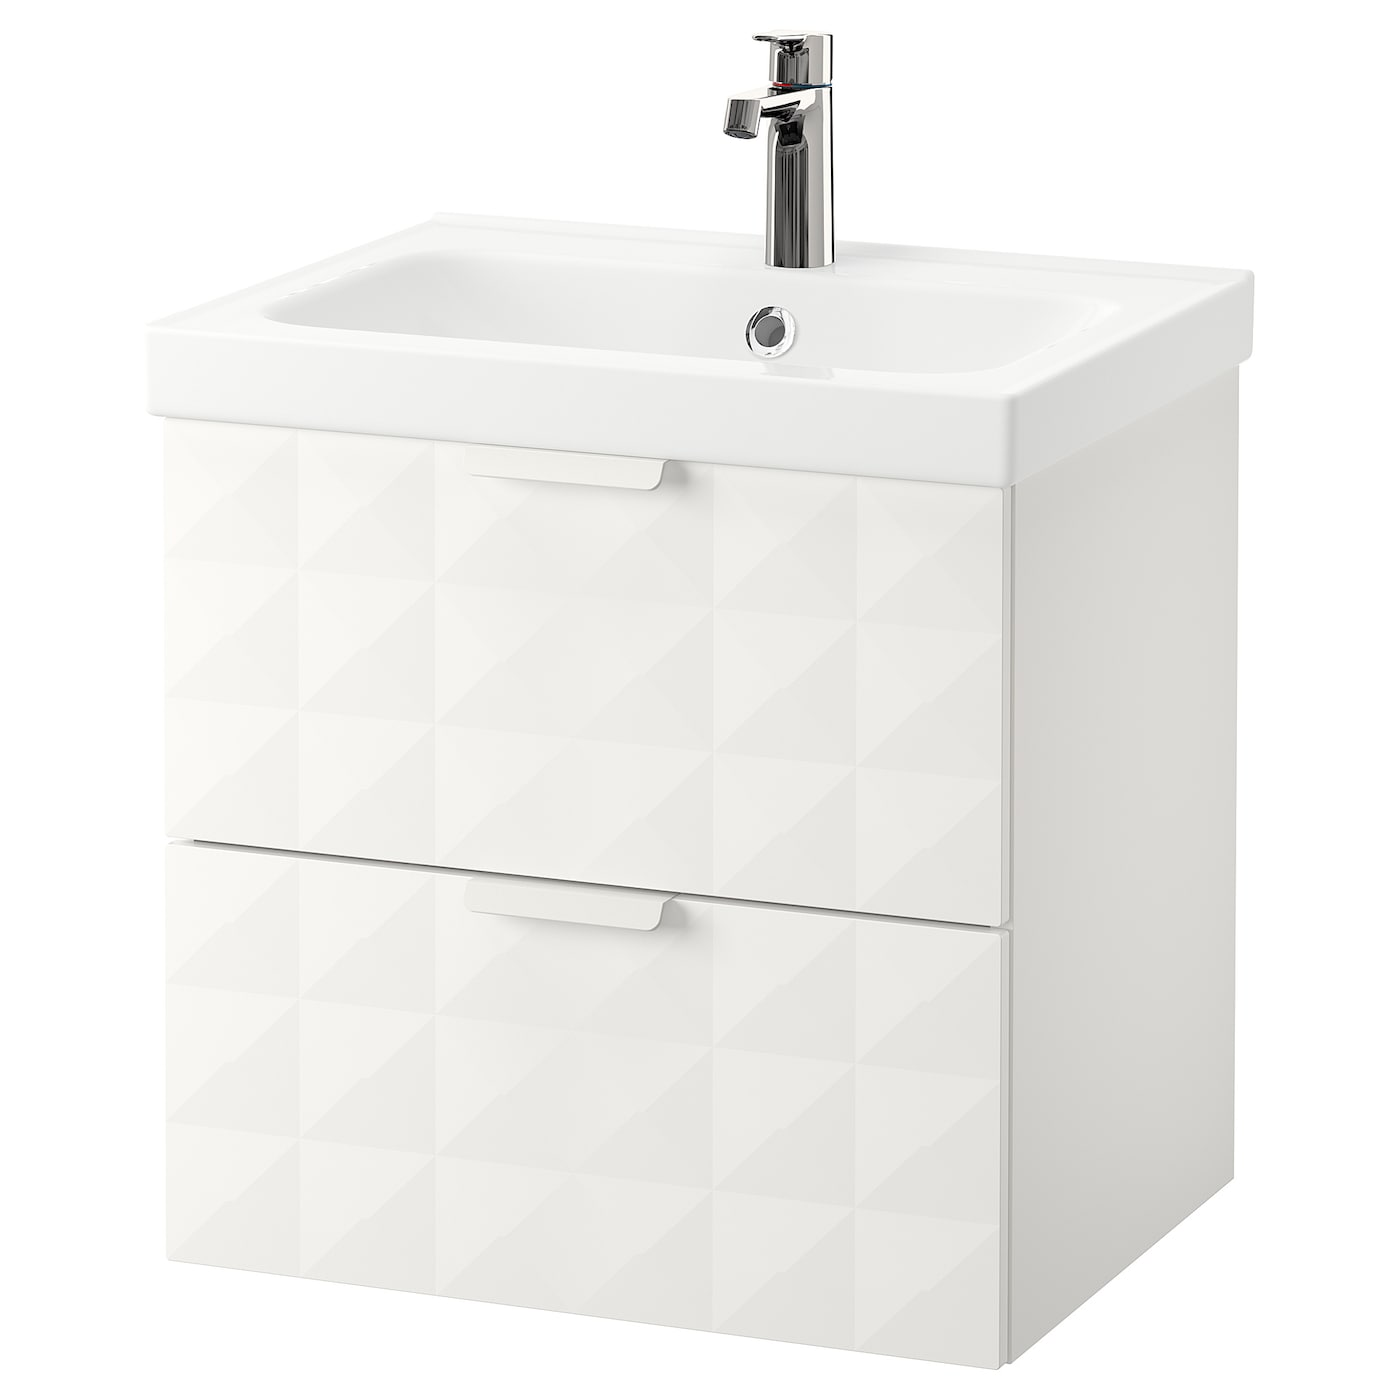 bathroom sink cabinets with drawers odensvik godmorgon wash stand with 2 drawers resj 246 n white 22312